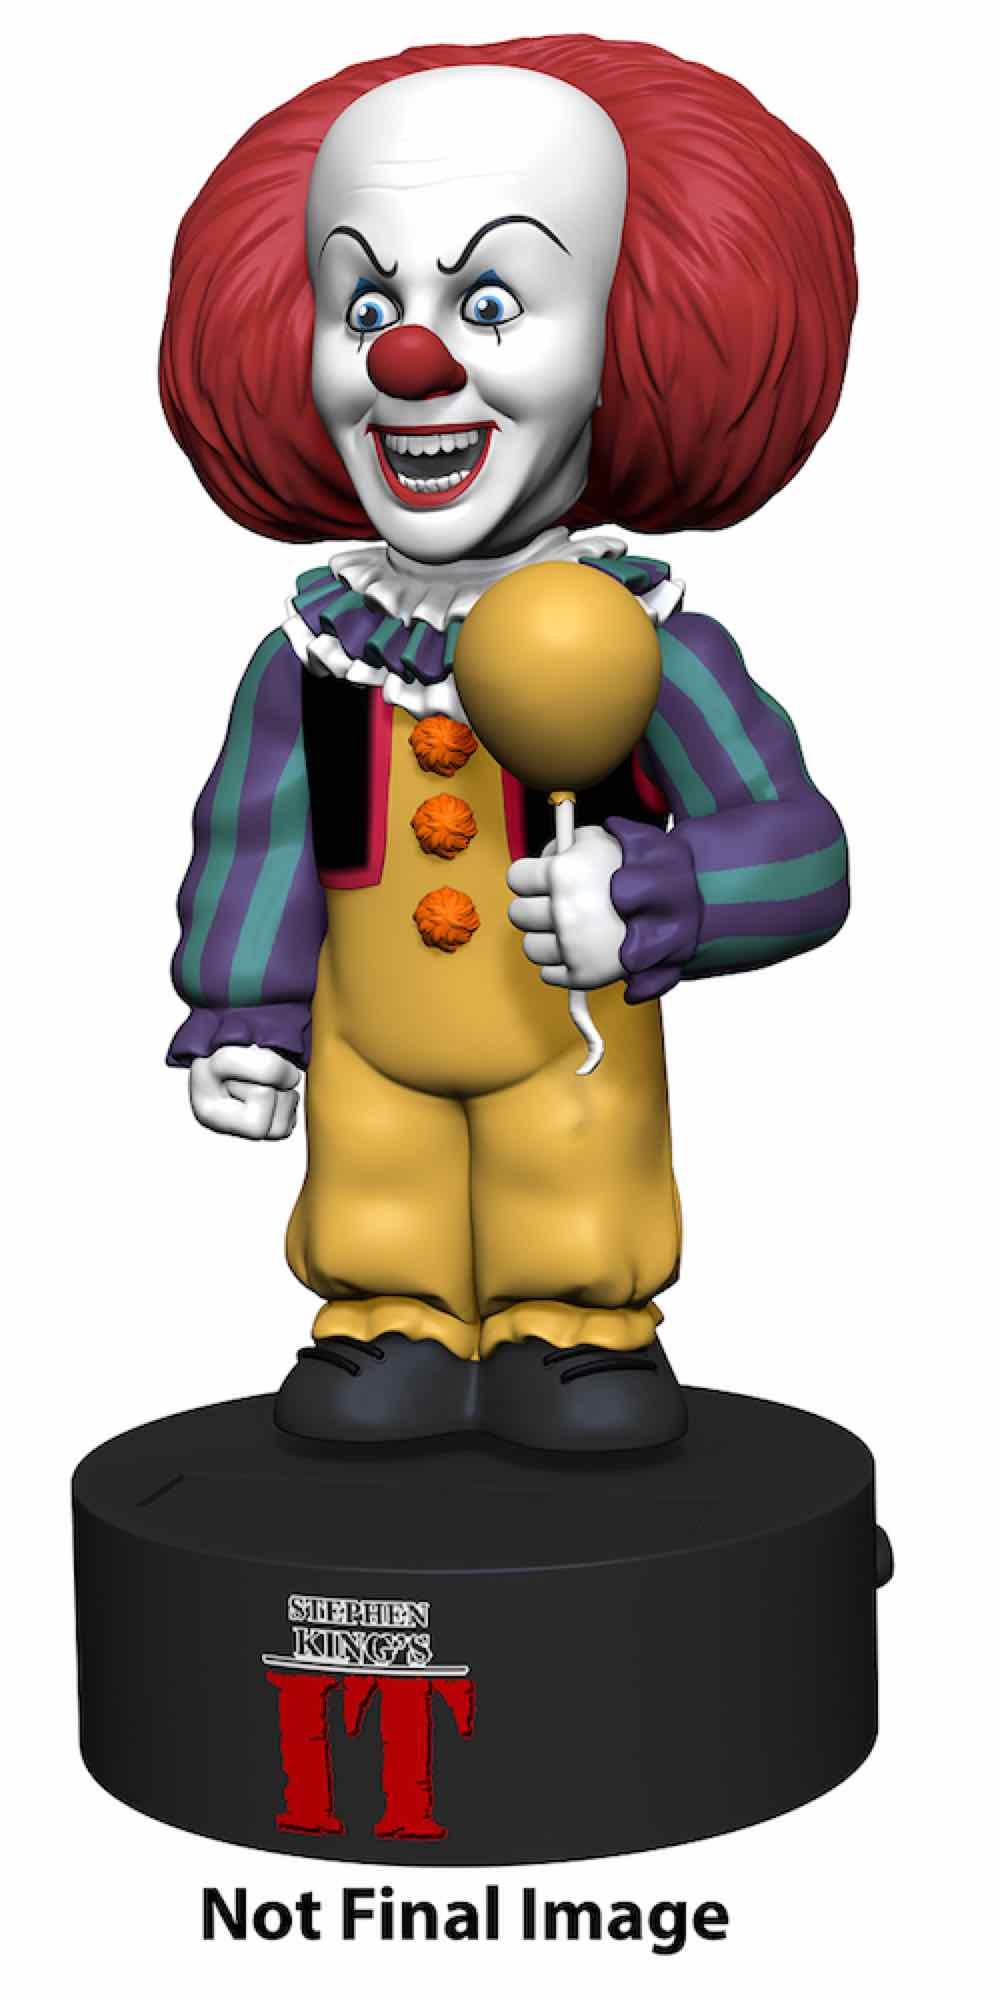 PENNYWISE BODY KNOCKER FIGURA 16.5 CM IT 1990 MINISERIES